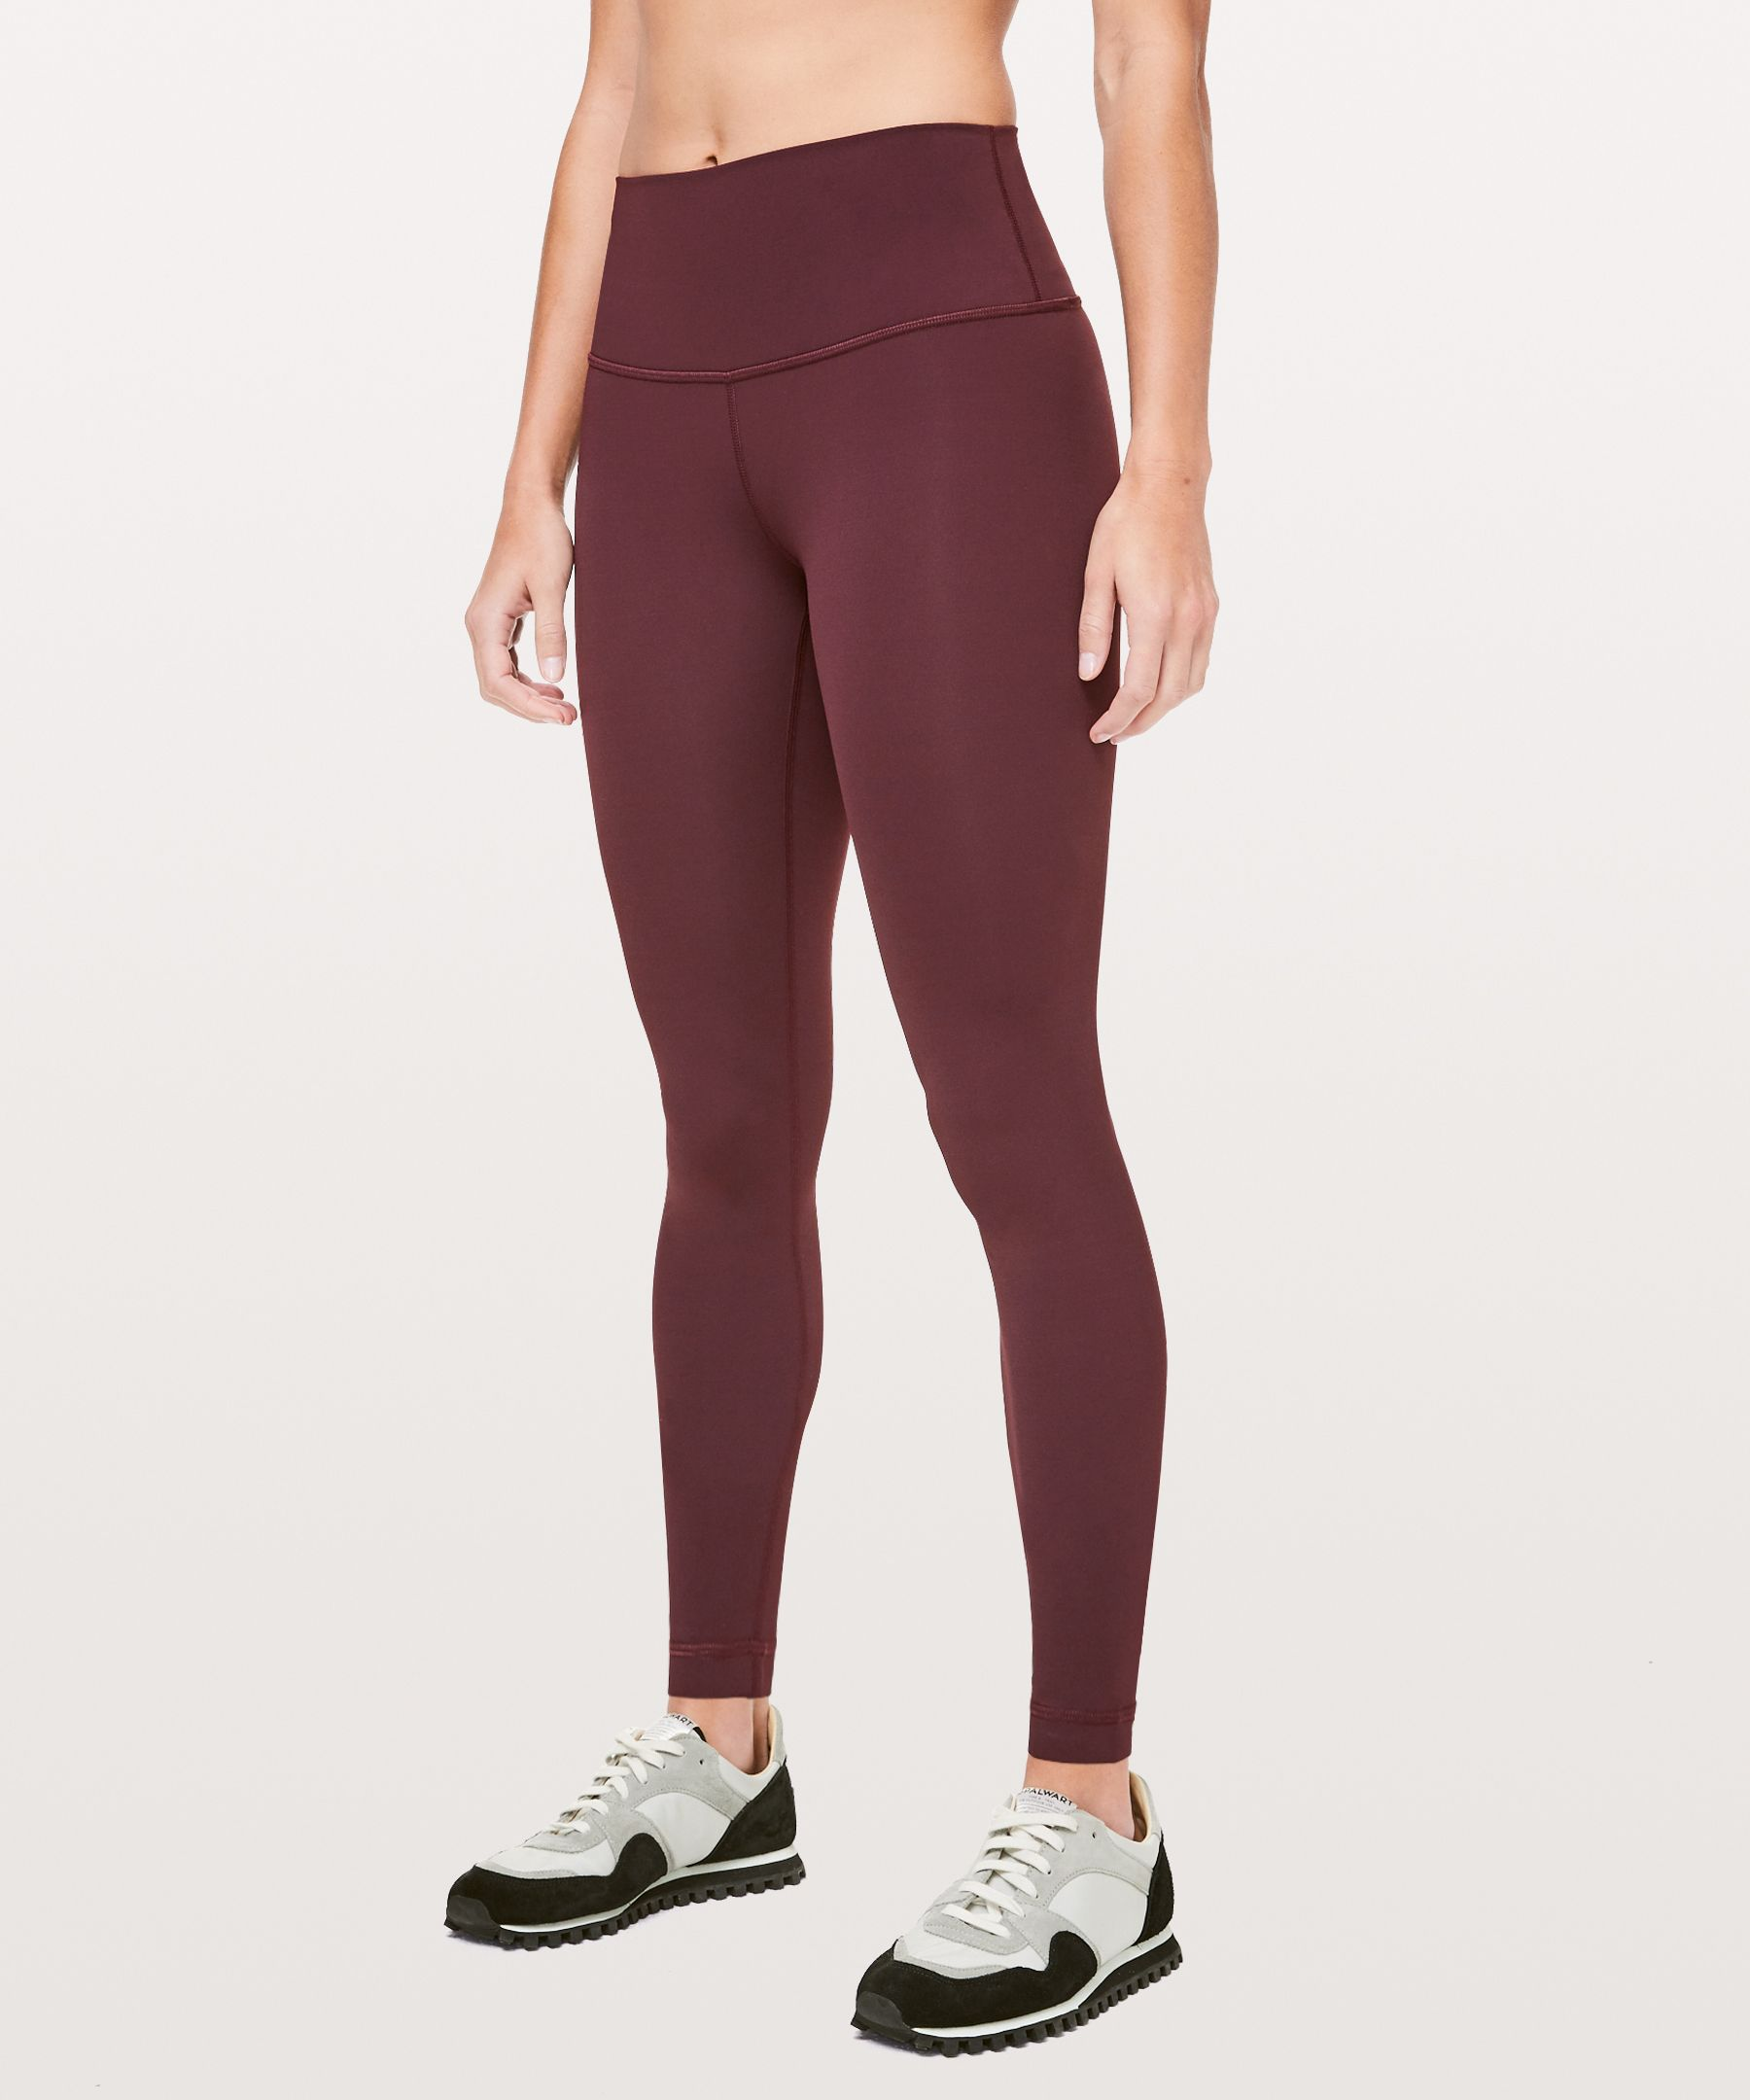 "Wunder Under High Rise Tight 28"" Brushed Luxtreme™ by Lululemon"